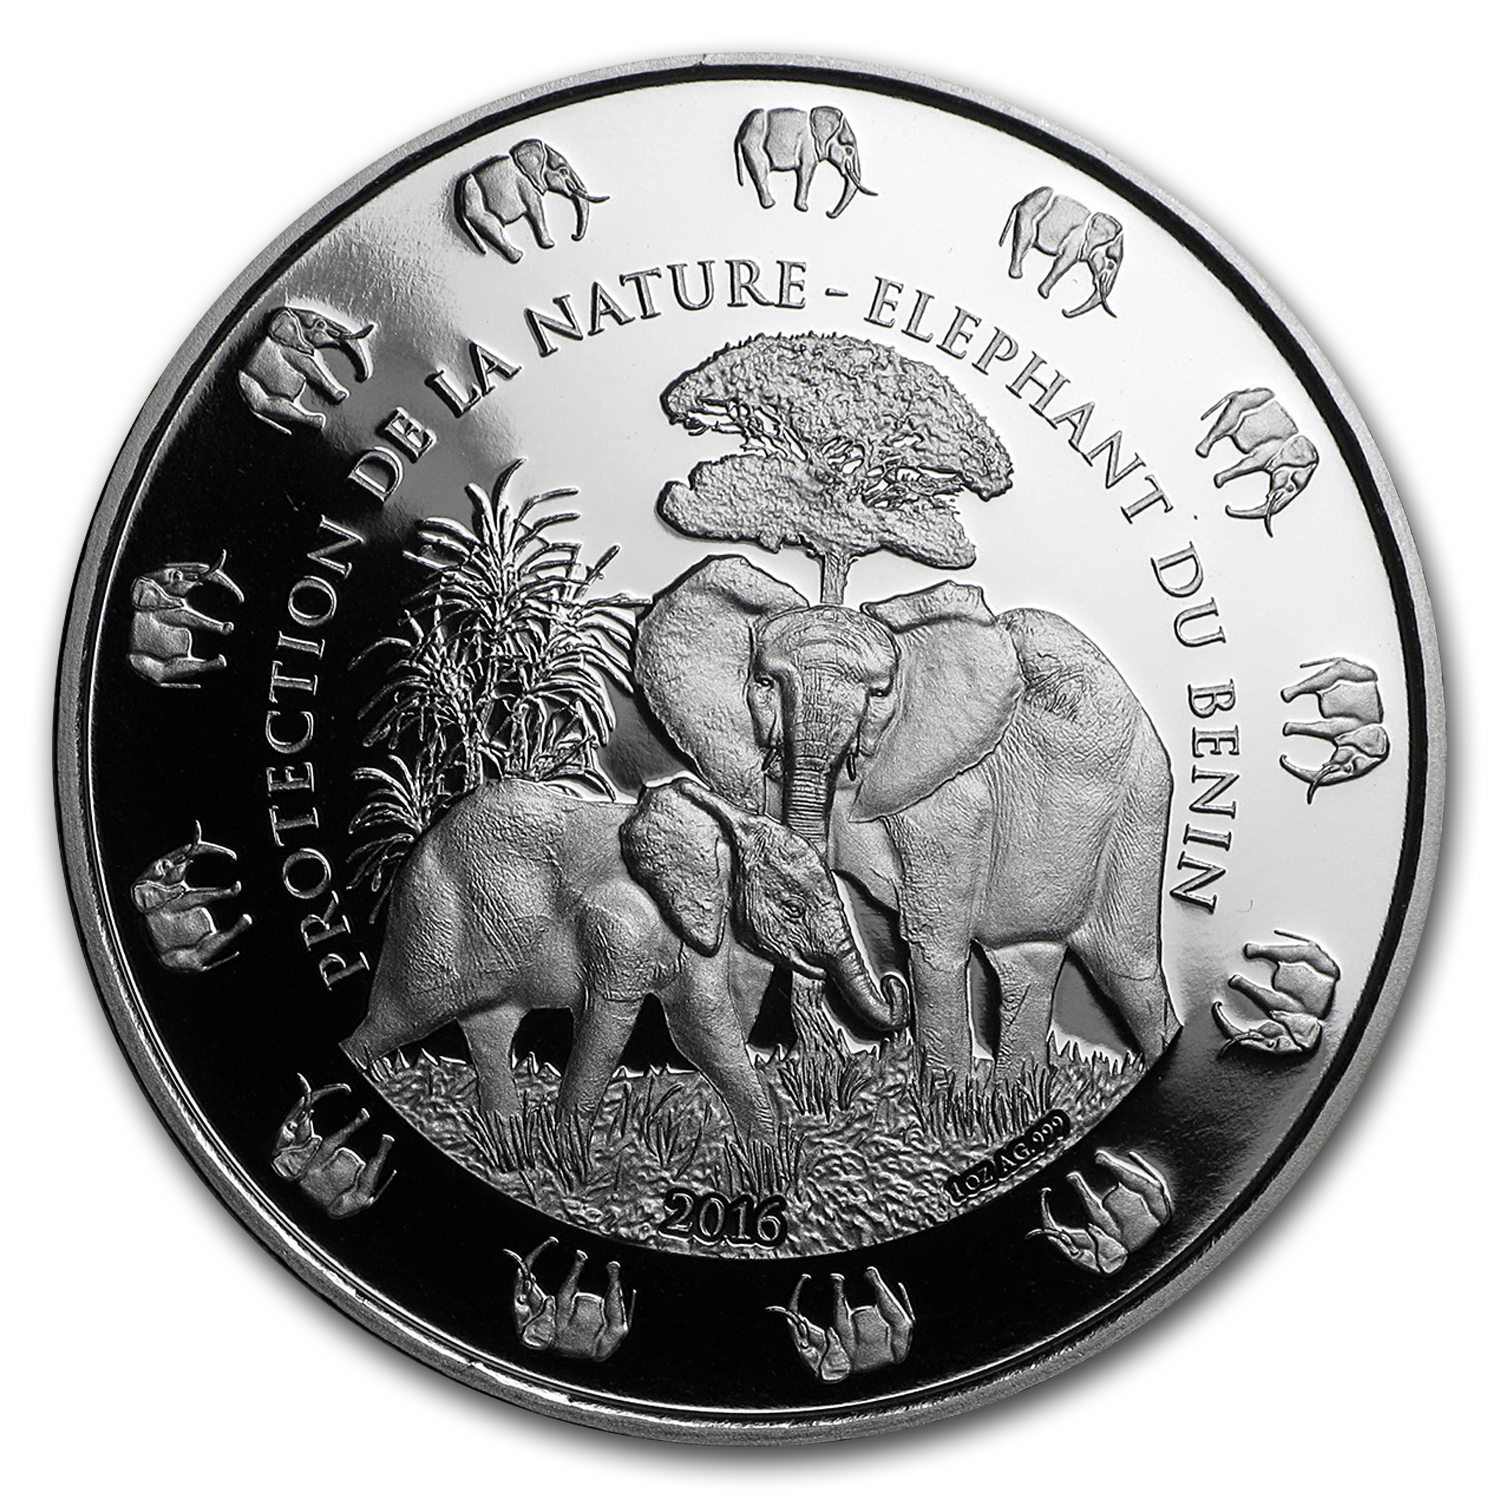 2016 Benin 1 oz Silver Protection de la Nature Elephant